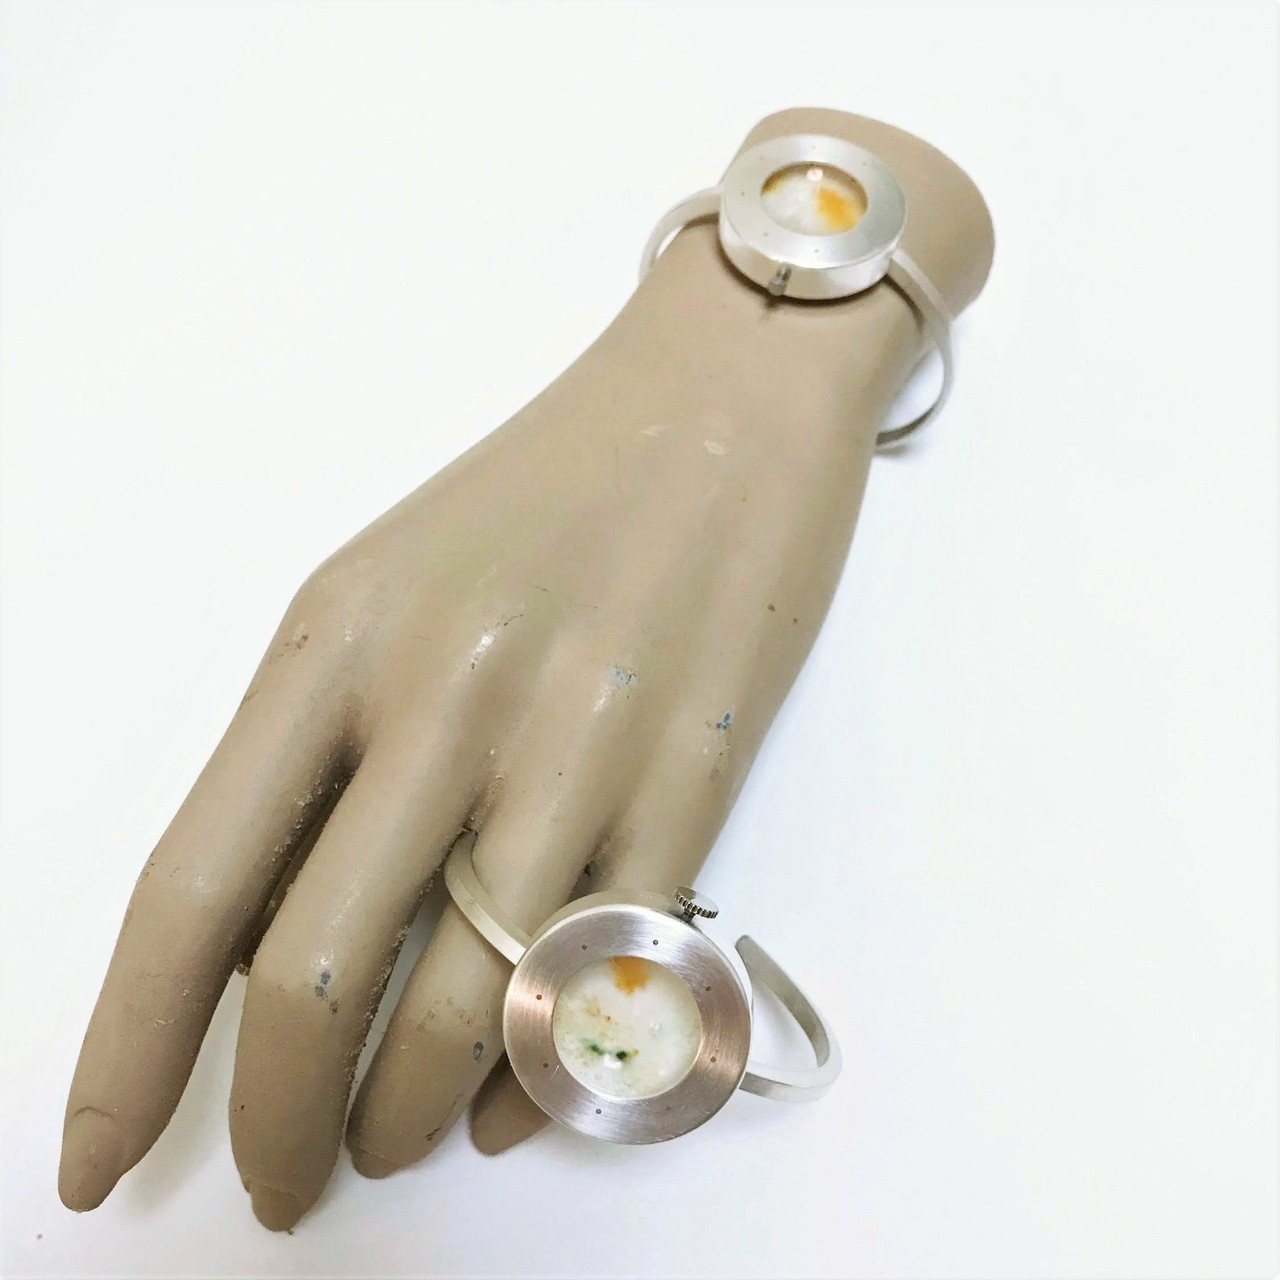 Wearable Microbes 2: Luxury Filth, wearable silver petri dish microbe bracelets by Stacy Lynne Motte.